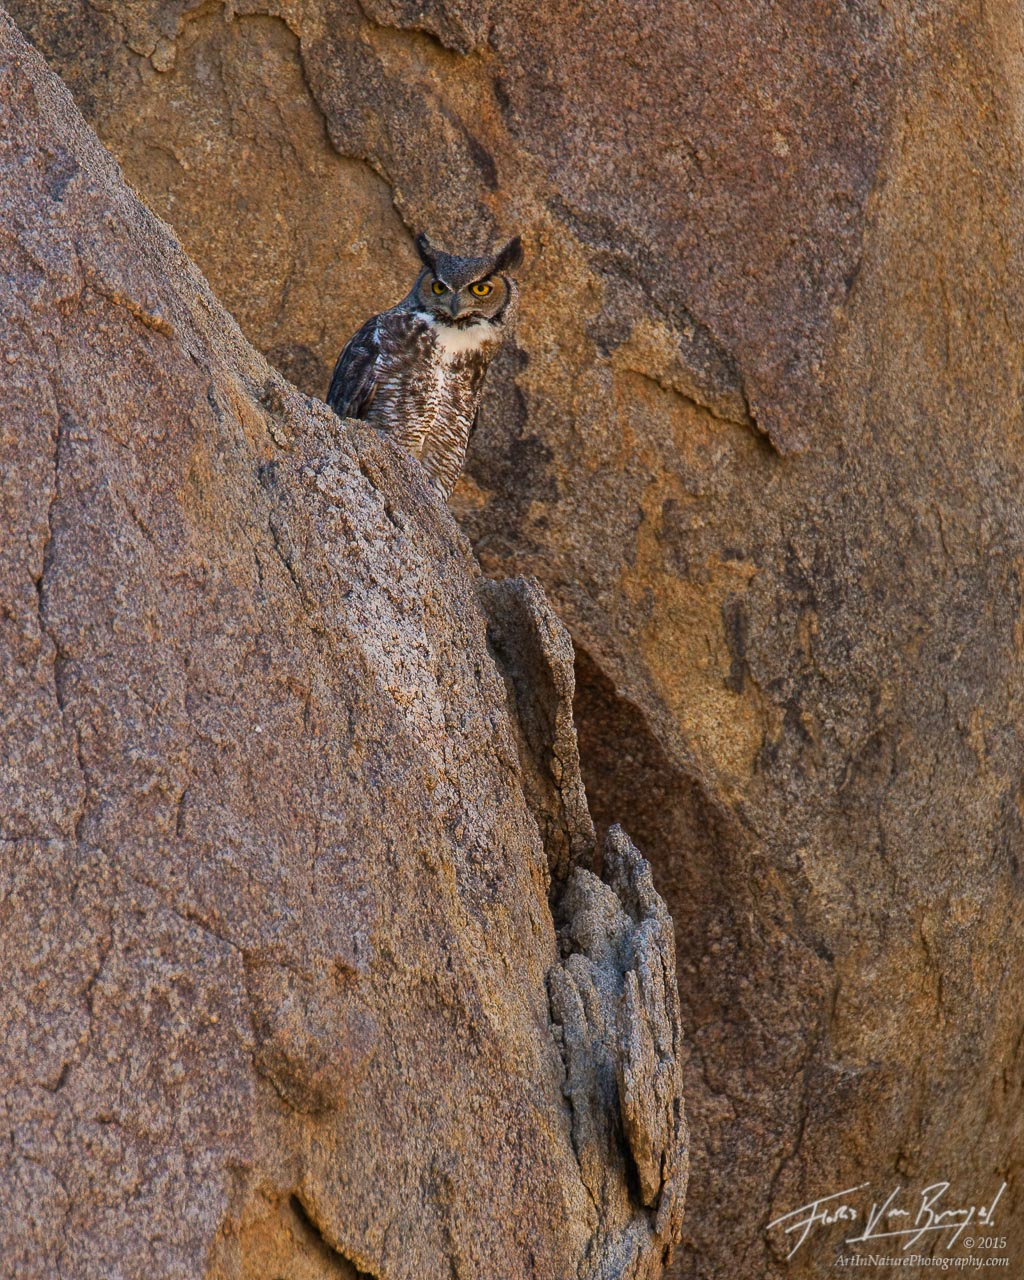 Great-horned Owl Bubo virginianus, Alabama Hills, California, desert, eastern sierra, photo